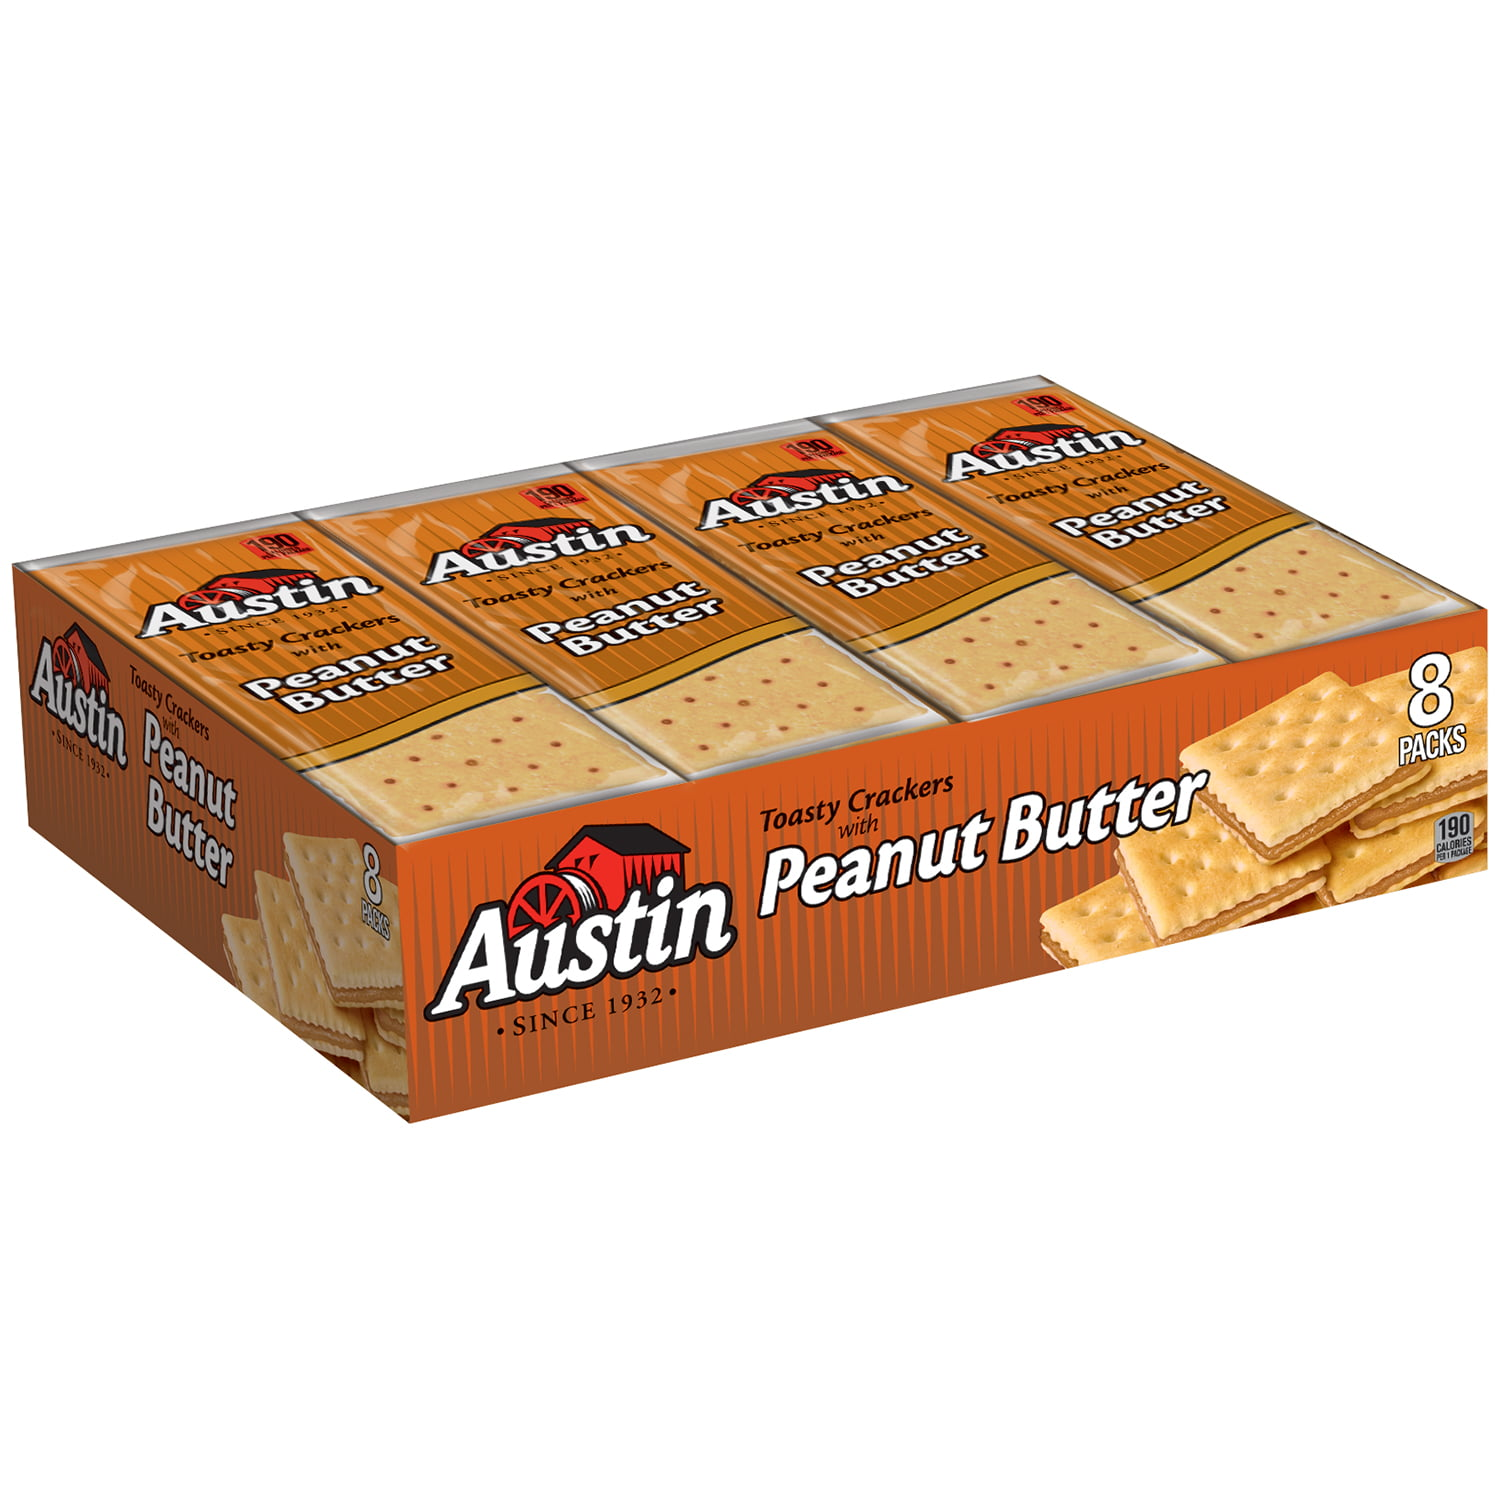 Austin Toasty Crackers with Peanut Butter Cracker Sandwiches, 1.38 oz, 8 count by Kellogg Sales Co.